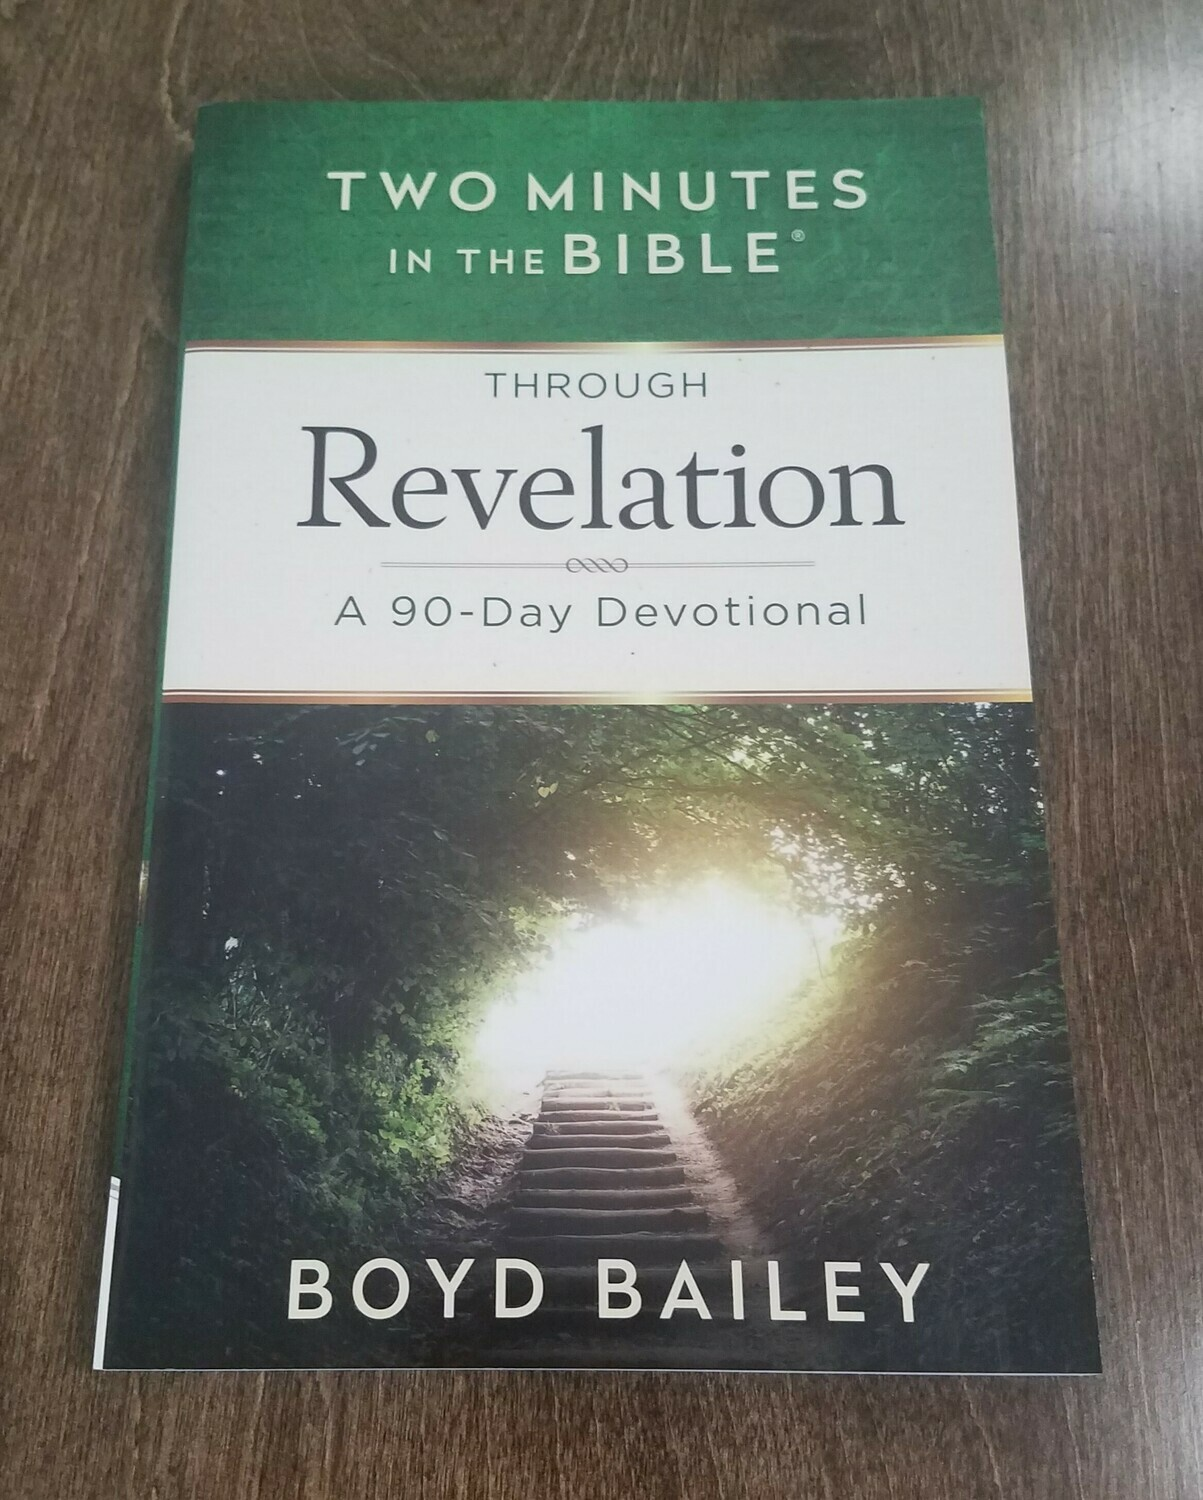 Two Minutes in the Bible Through Revelation: A 90-Day Devotional by Boyd Bailey